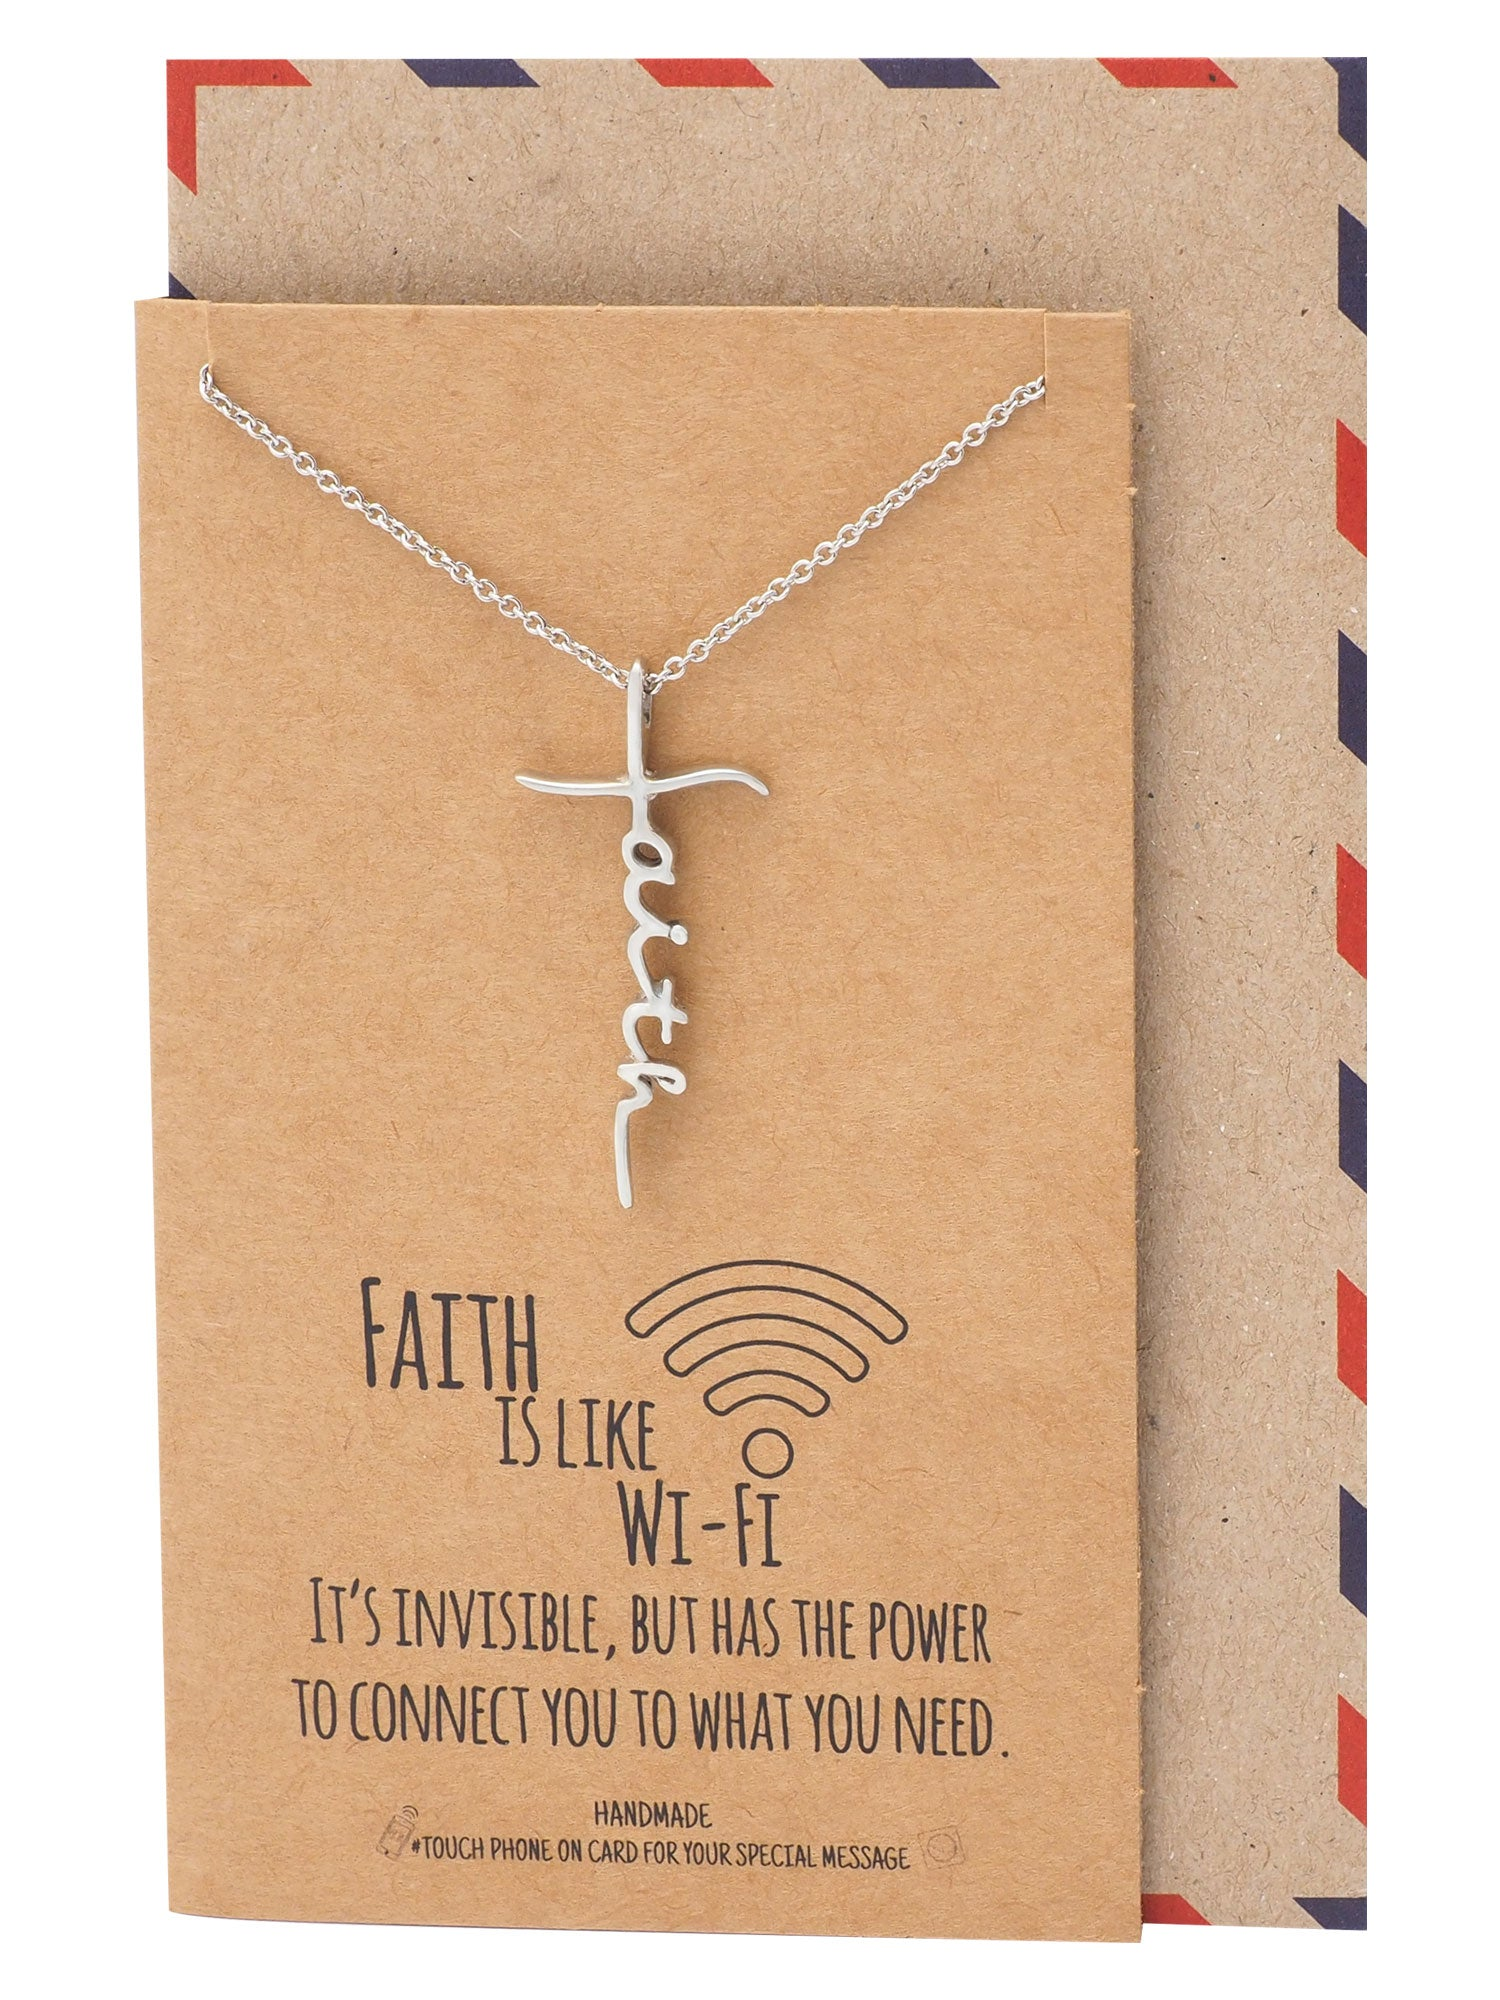 Judy Faith Pendant Necklace, Gifts for Women with Inspirational Quote on Greeting Card